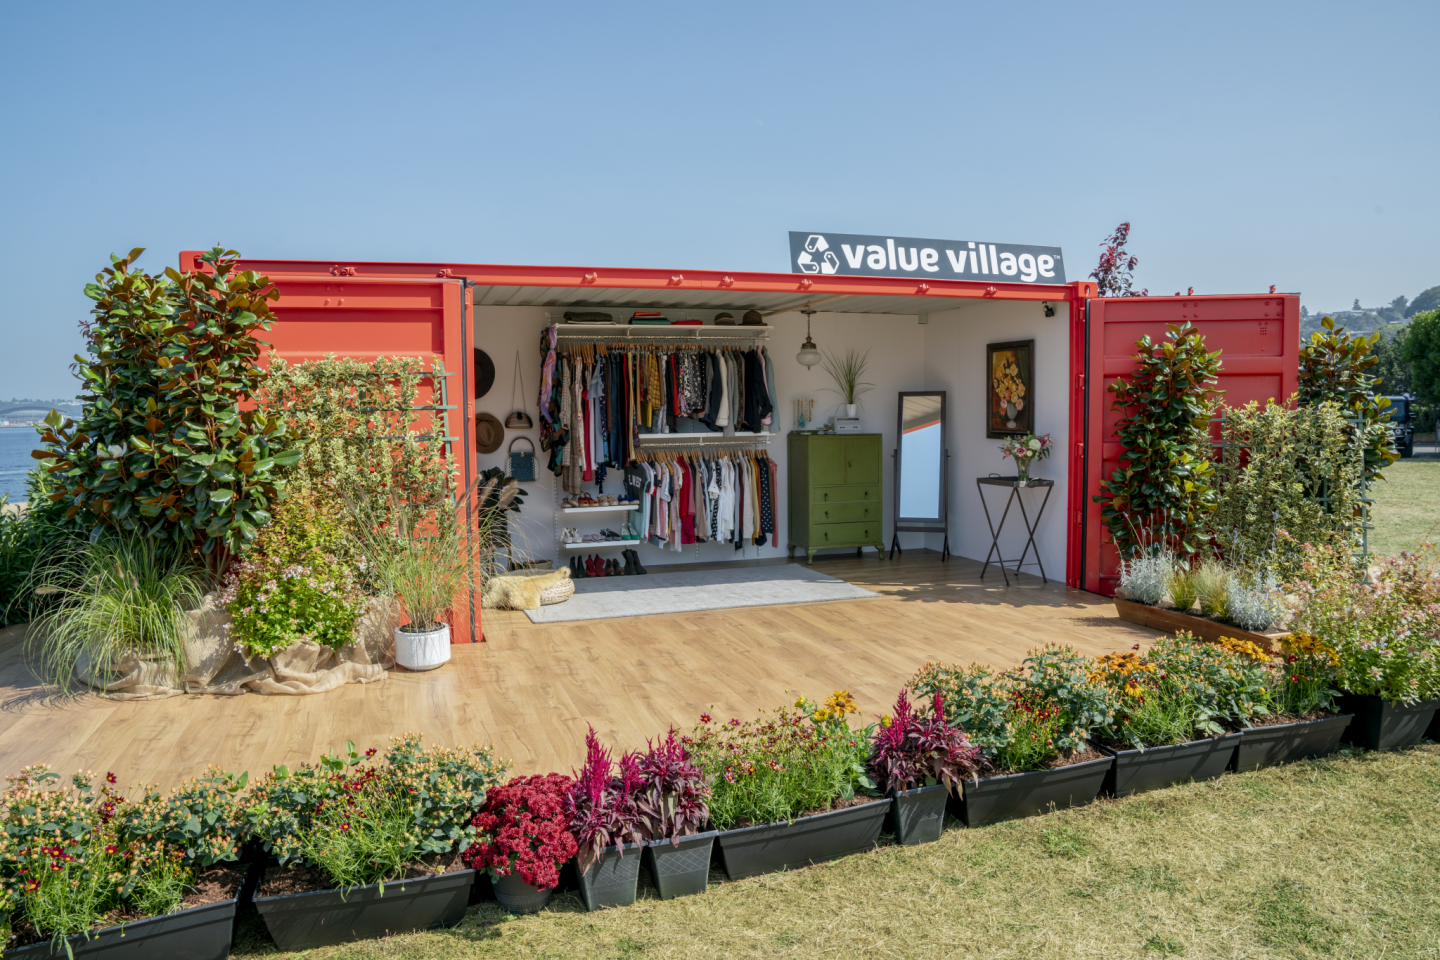 National thrift shop day – national thrift shop day value village – value village seattle – value village hours – shipping container homes – shipping container homes pictures – shipping container closets – tiny house clothes closet – tiny house ideas – tiny house walk in closet